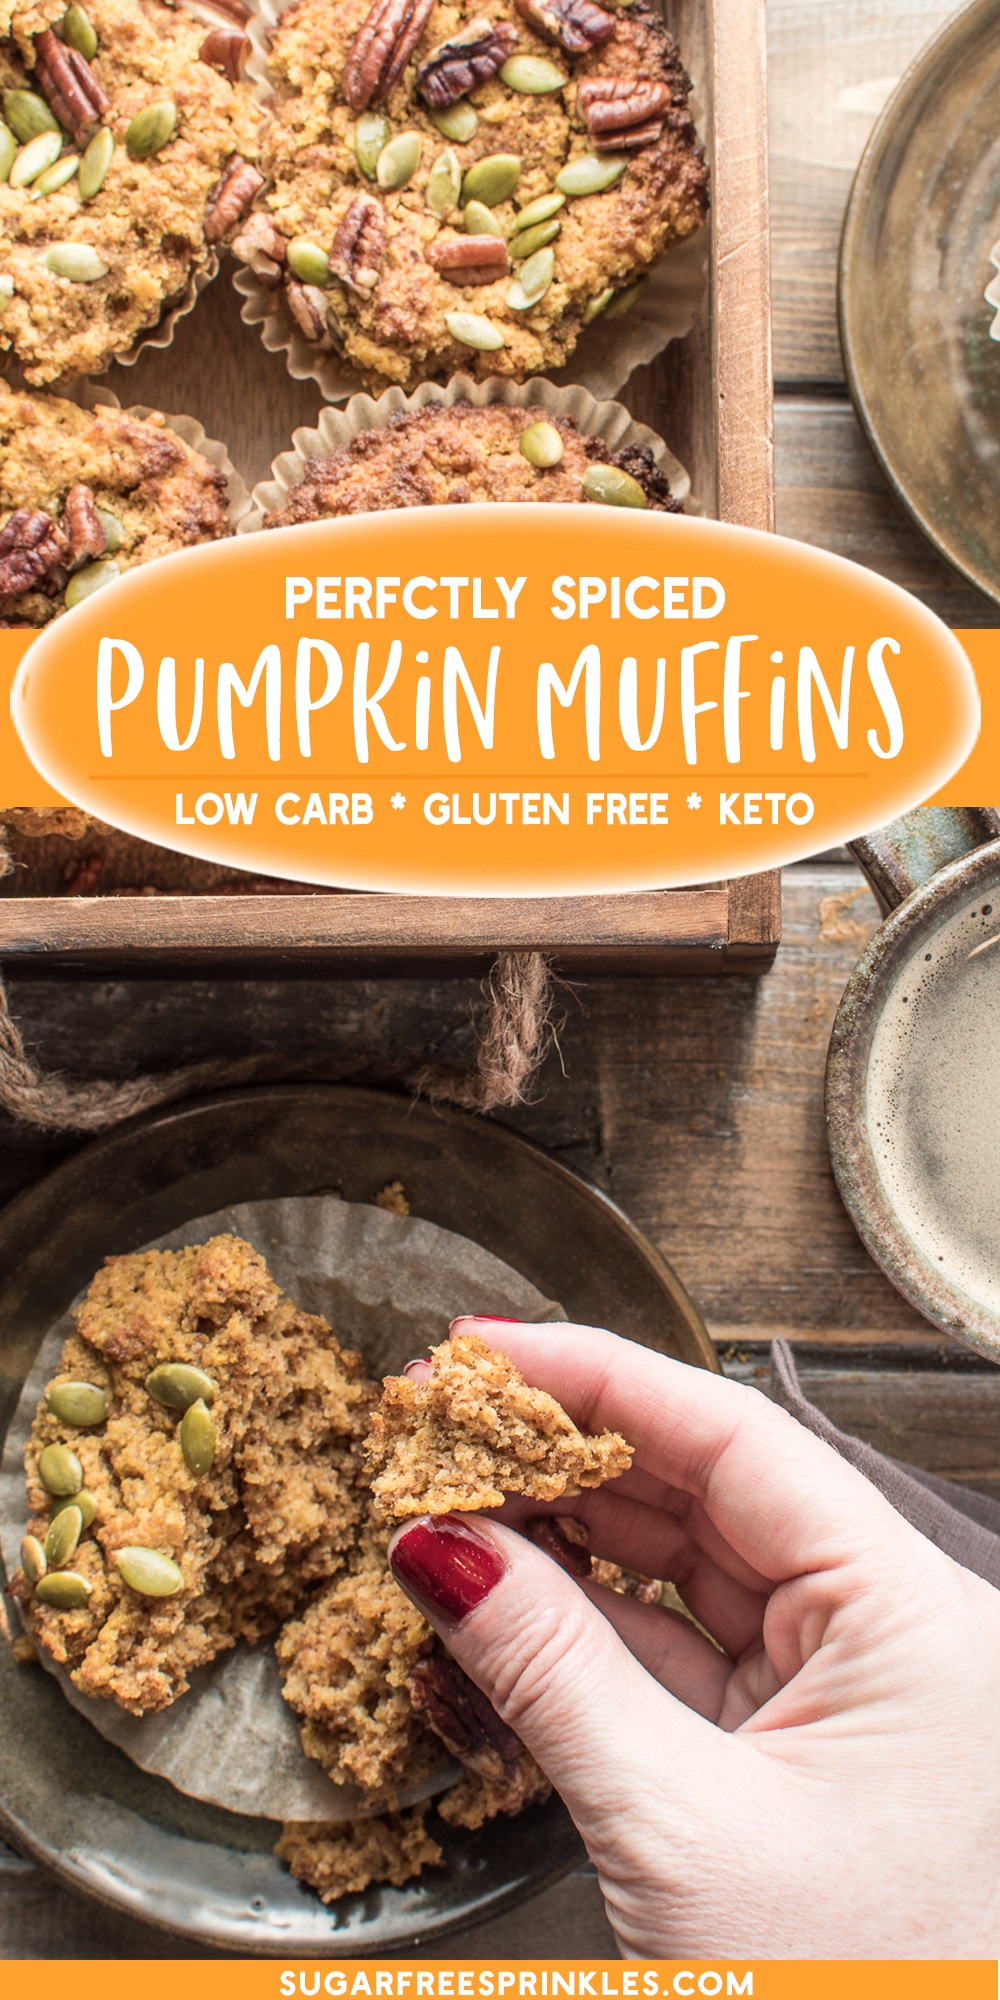 These low carb pumpkin muffins are bursting with warm fall spices. A low carb baking recipe that you can whip up quick and have for breakfast all week long. This keto-friendly muffin recipe bakes up moist and dense, with a great texture and flavor. These pumpkin spice muffins are also, gluten-free, and can be adapted to be dairy-free.